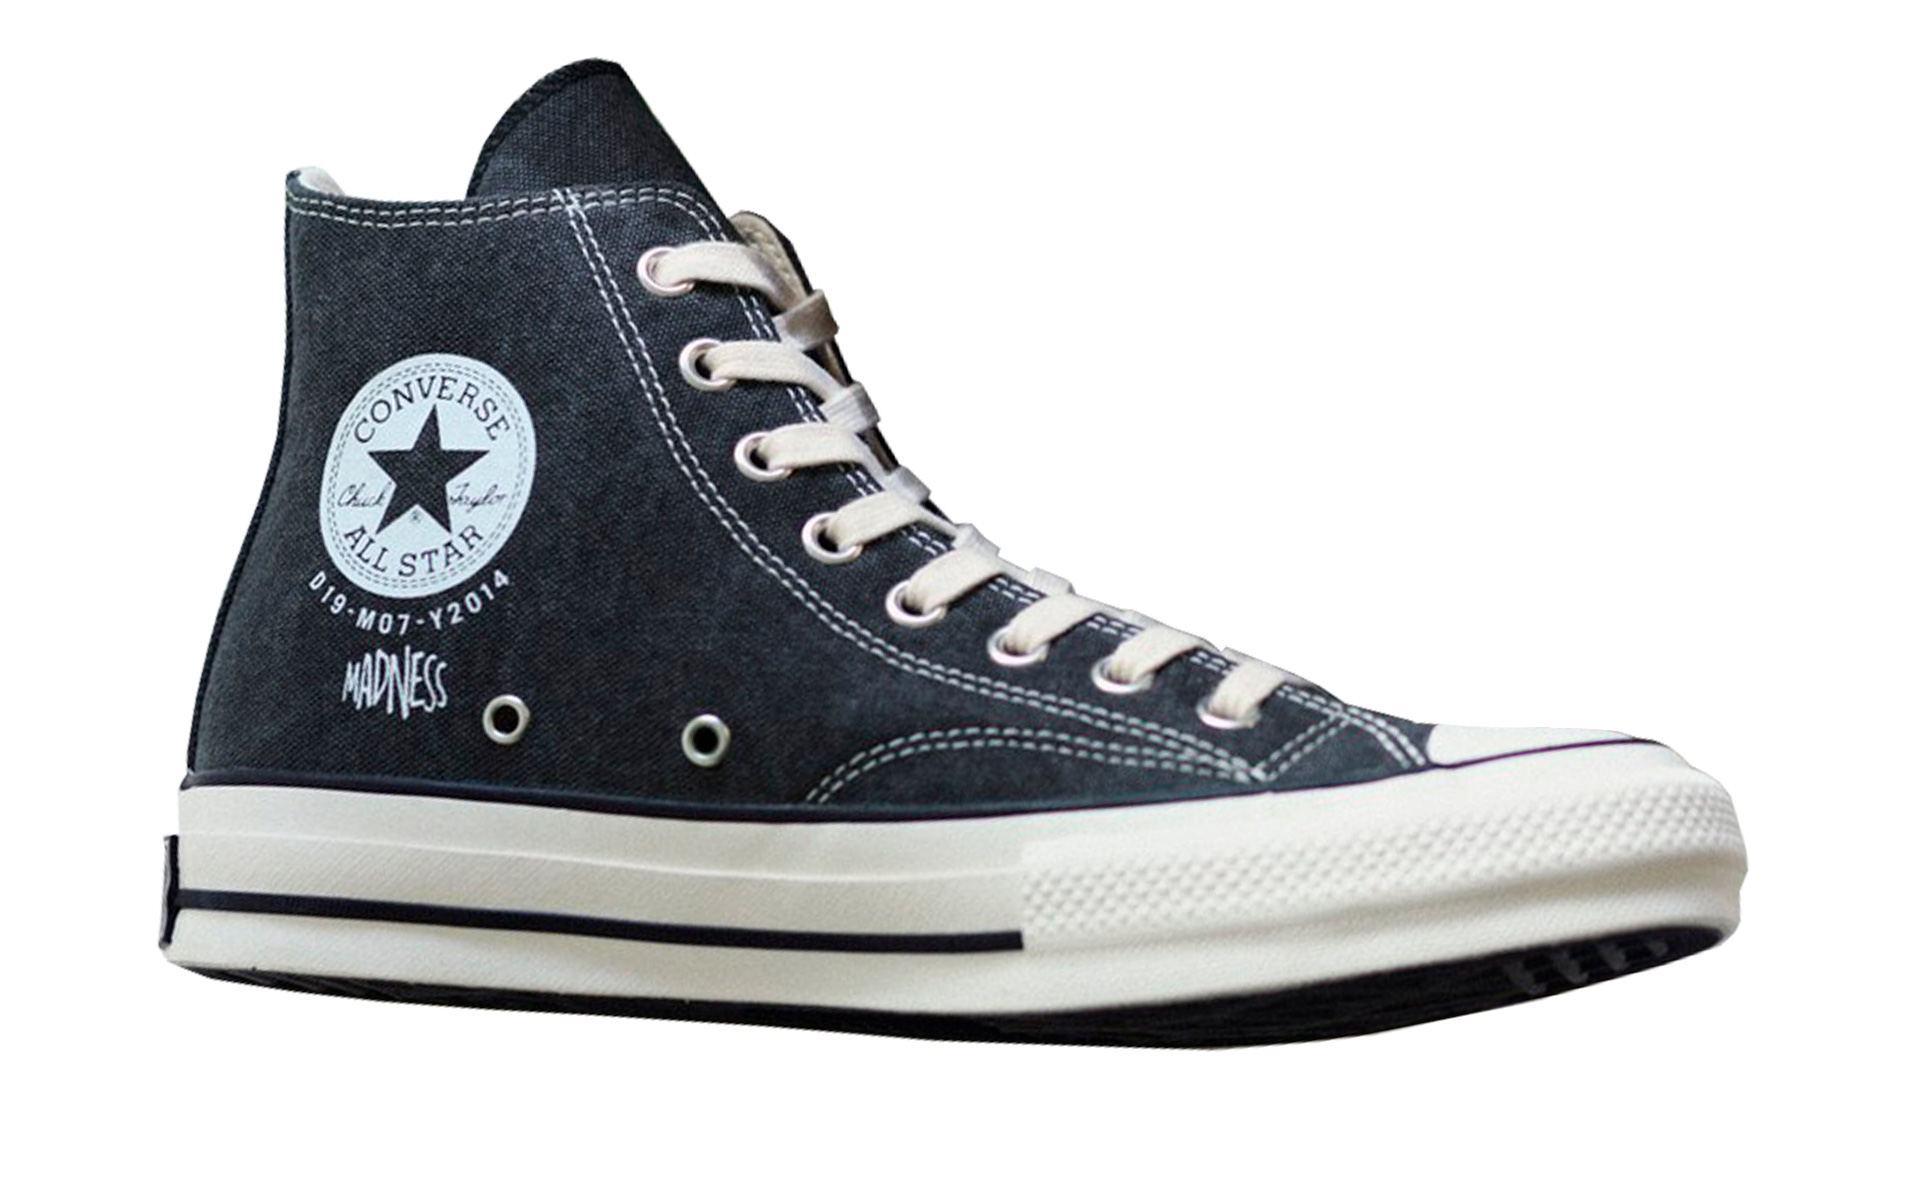 MADNESS x Converse Addict Chuck Taylor All-Star High